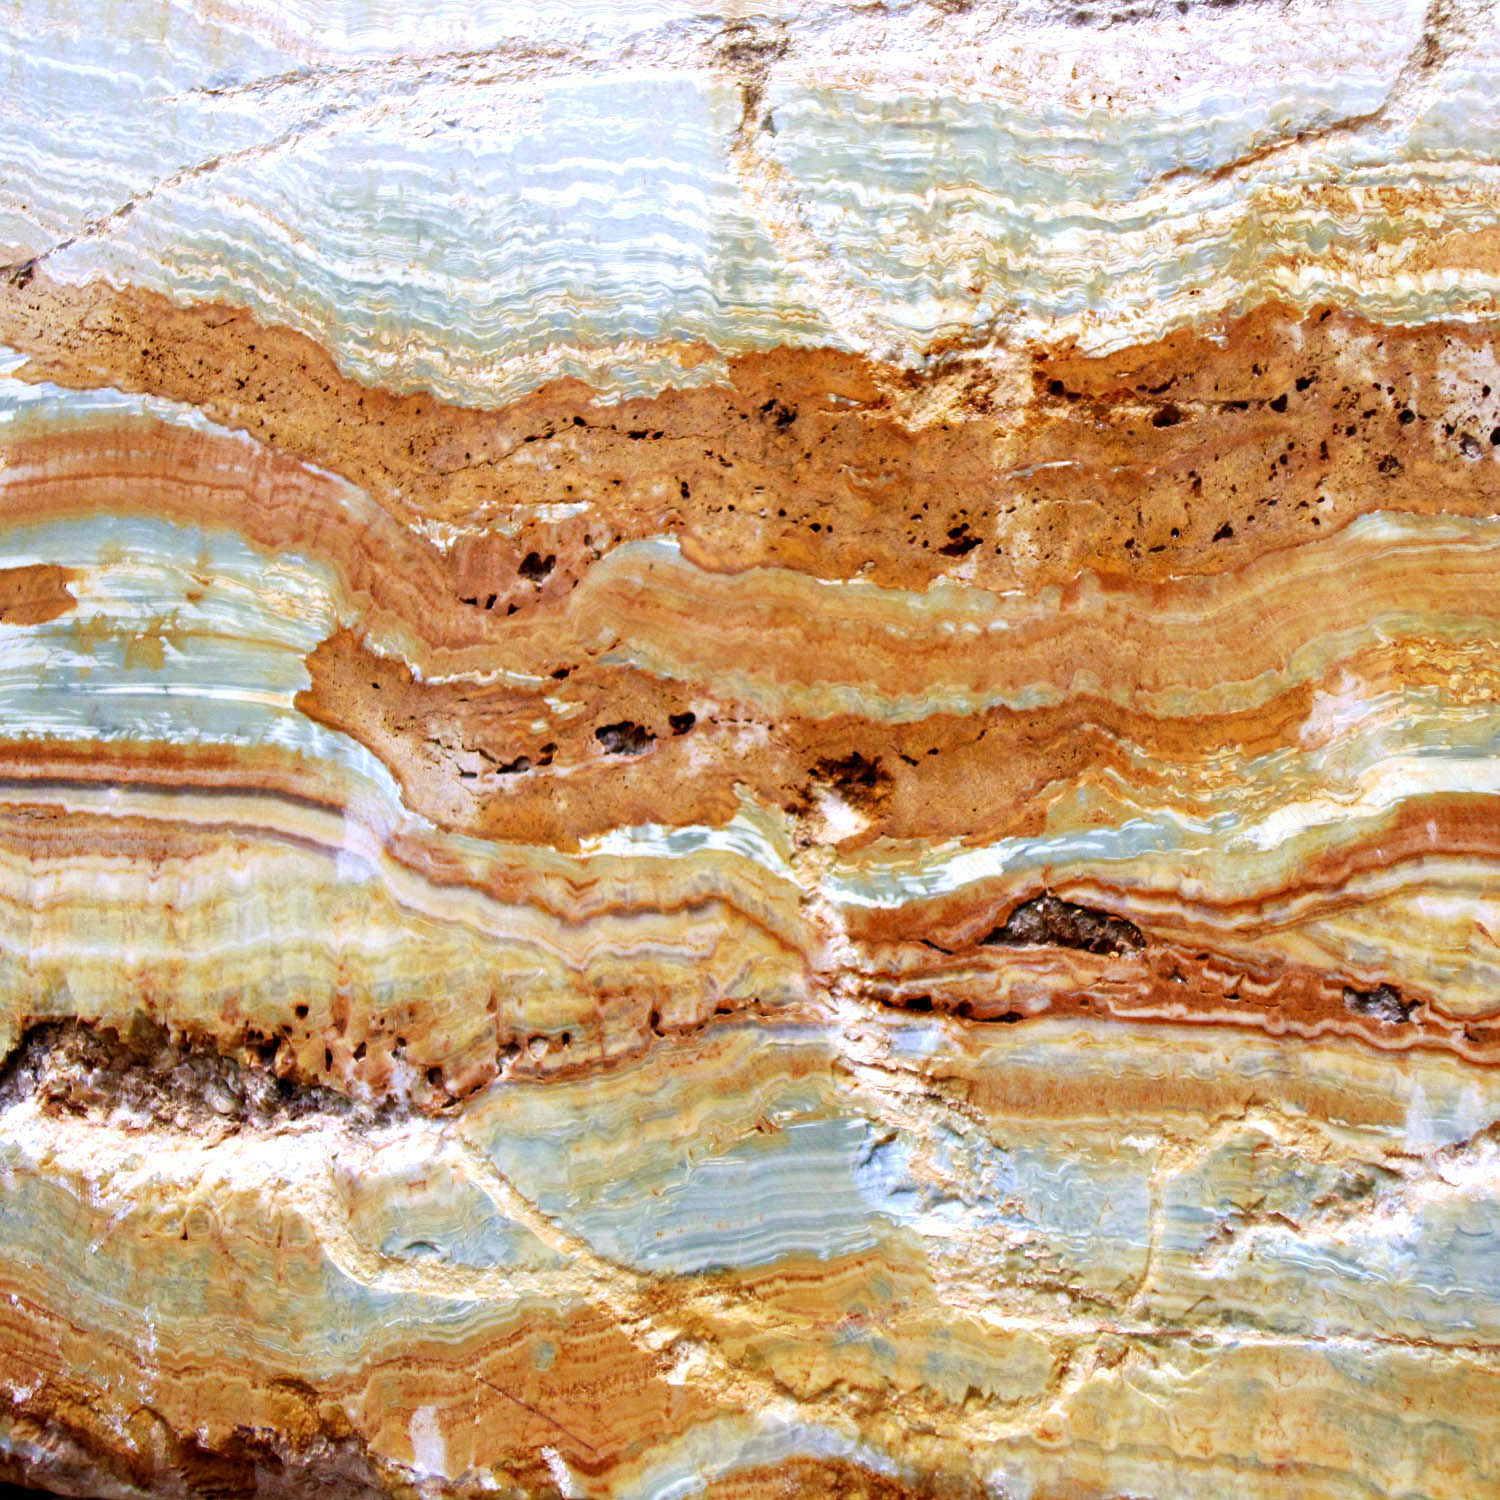 Detail shot of the onyx stone used in the furniture design of the Metamorphic Table